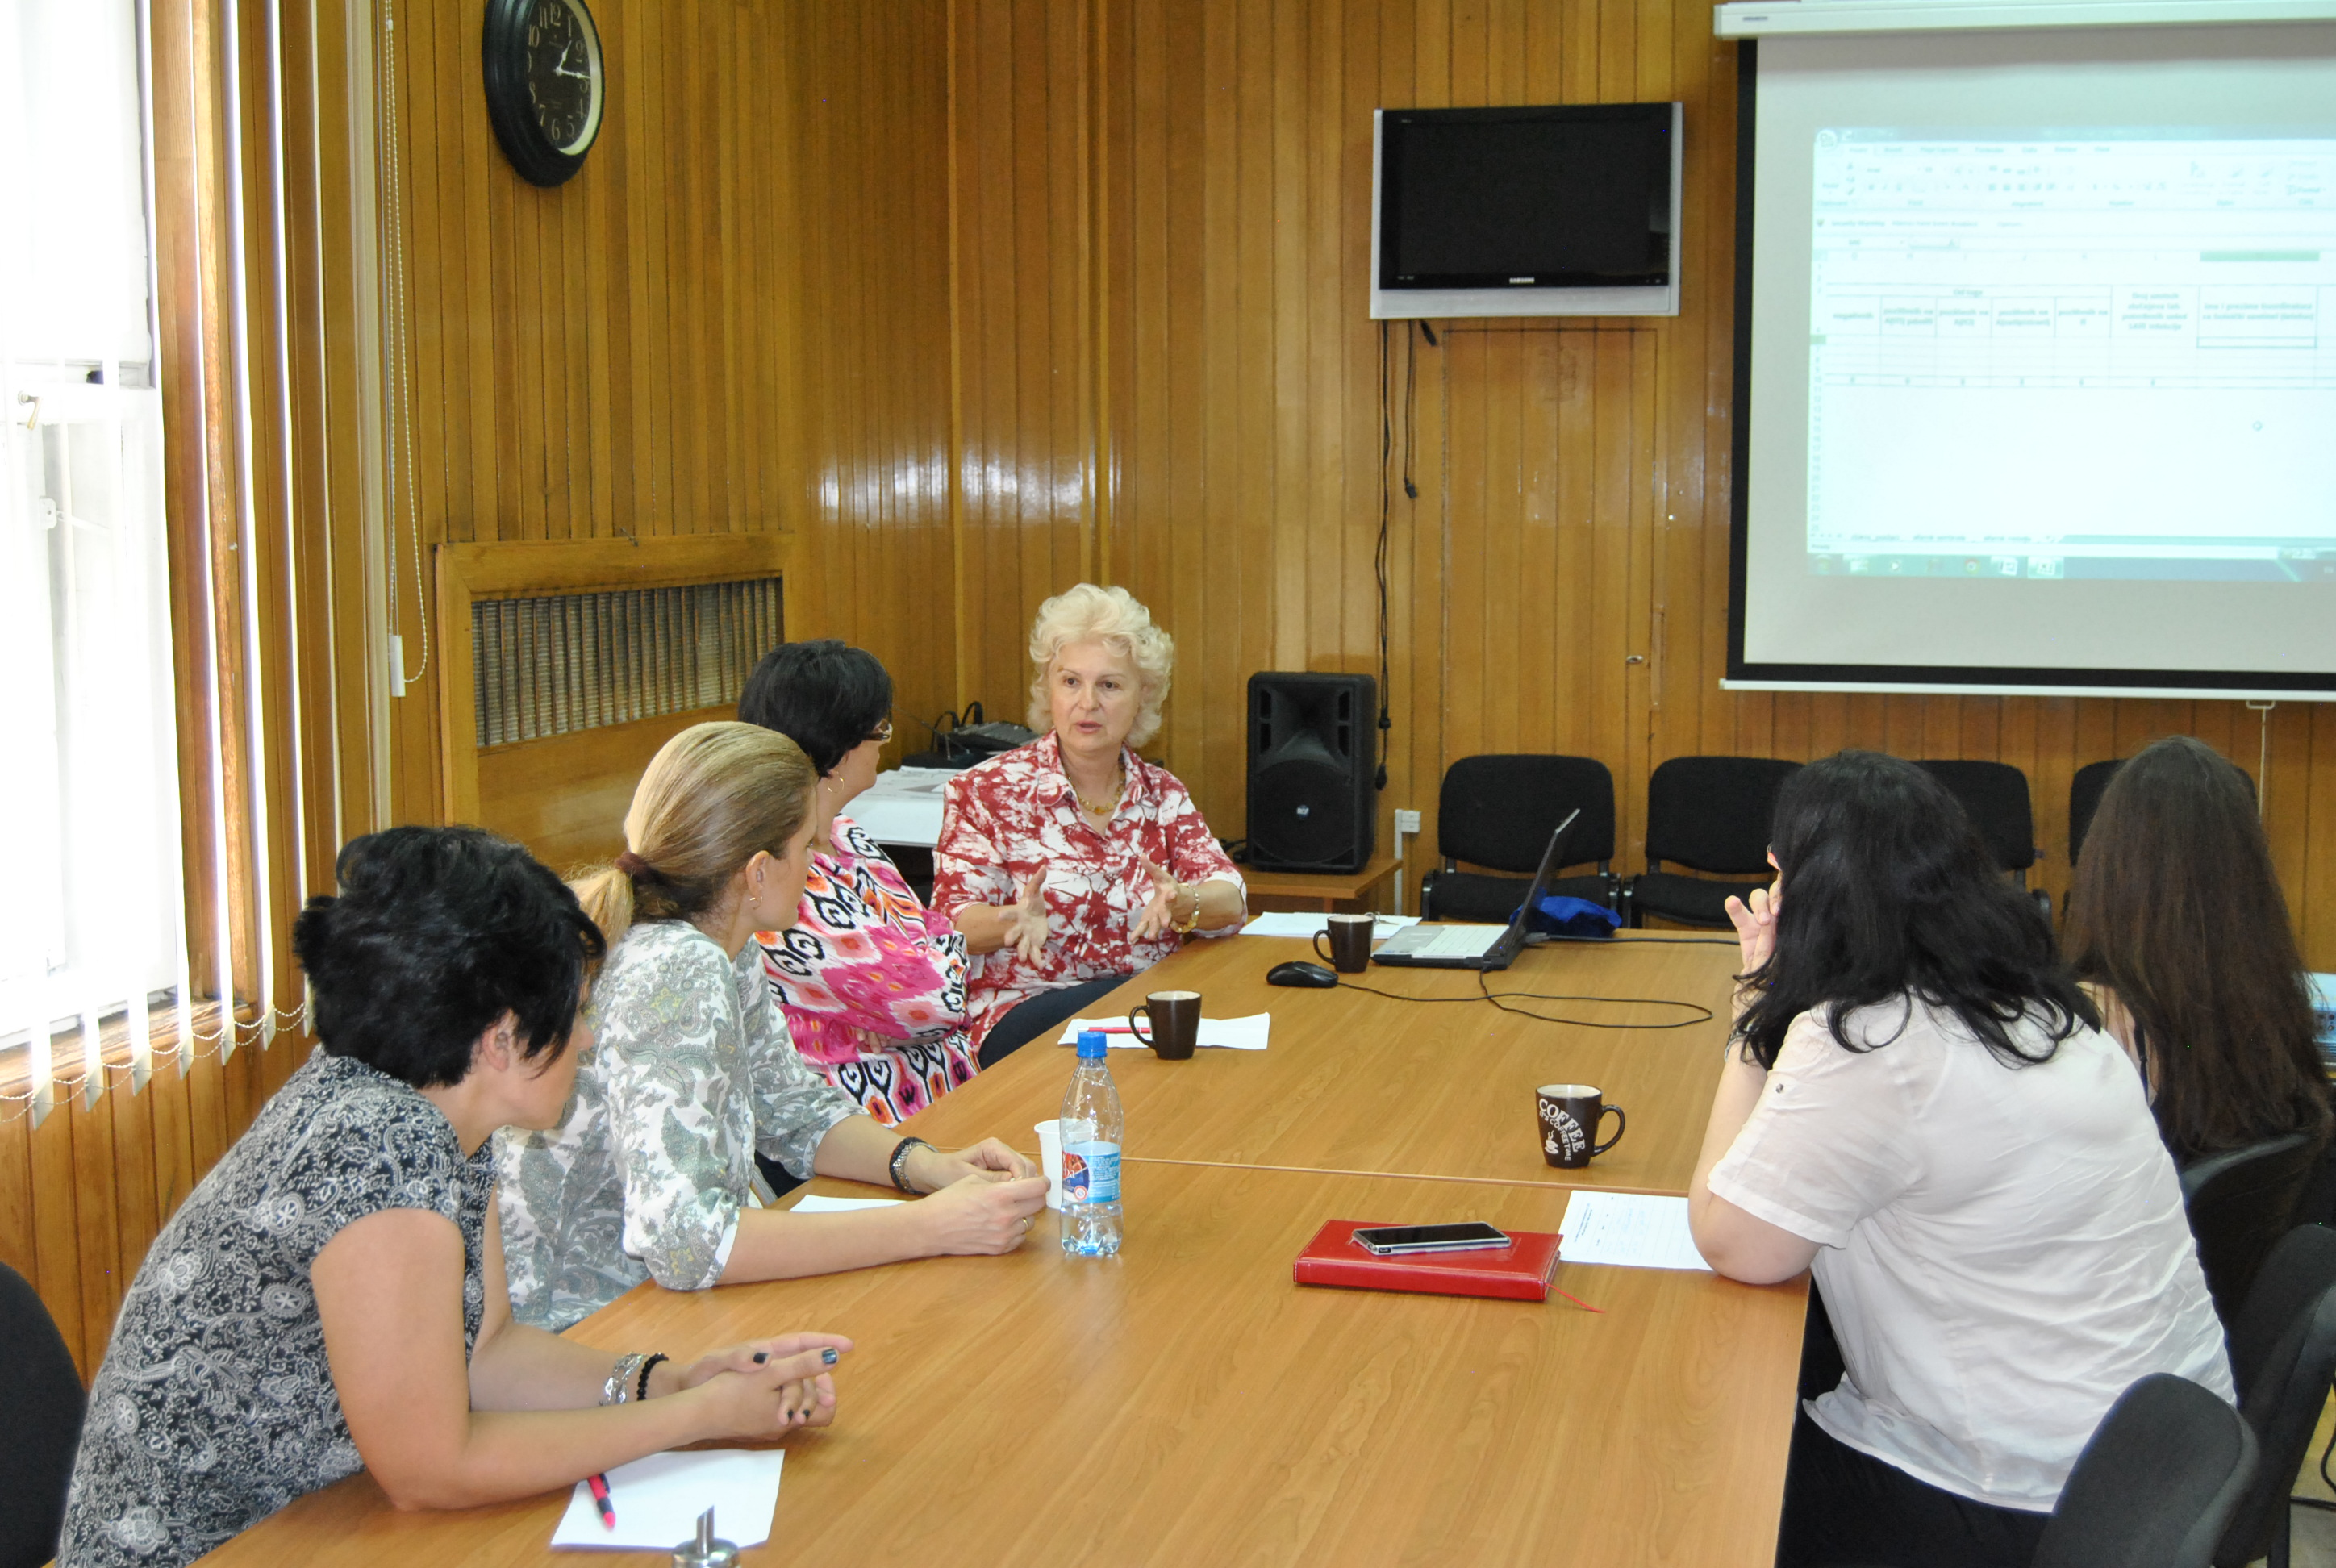 Serbia, Workshop to discuss Influenza Surveillance, ILI/SARI, 21.06.2016